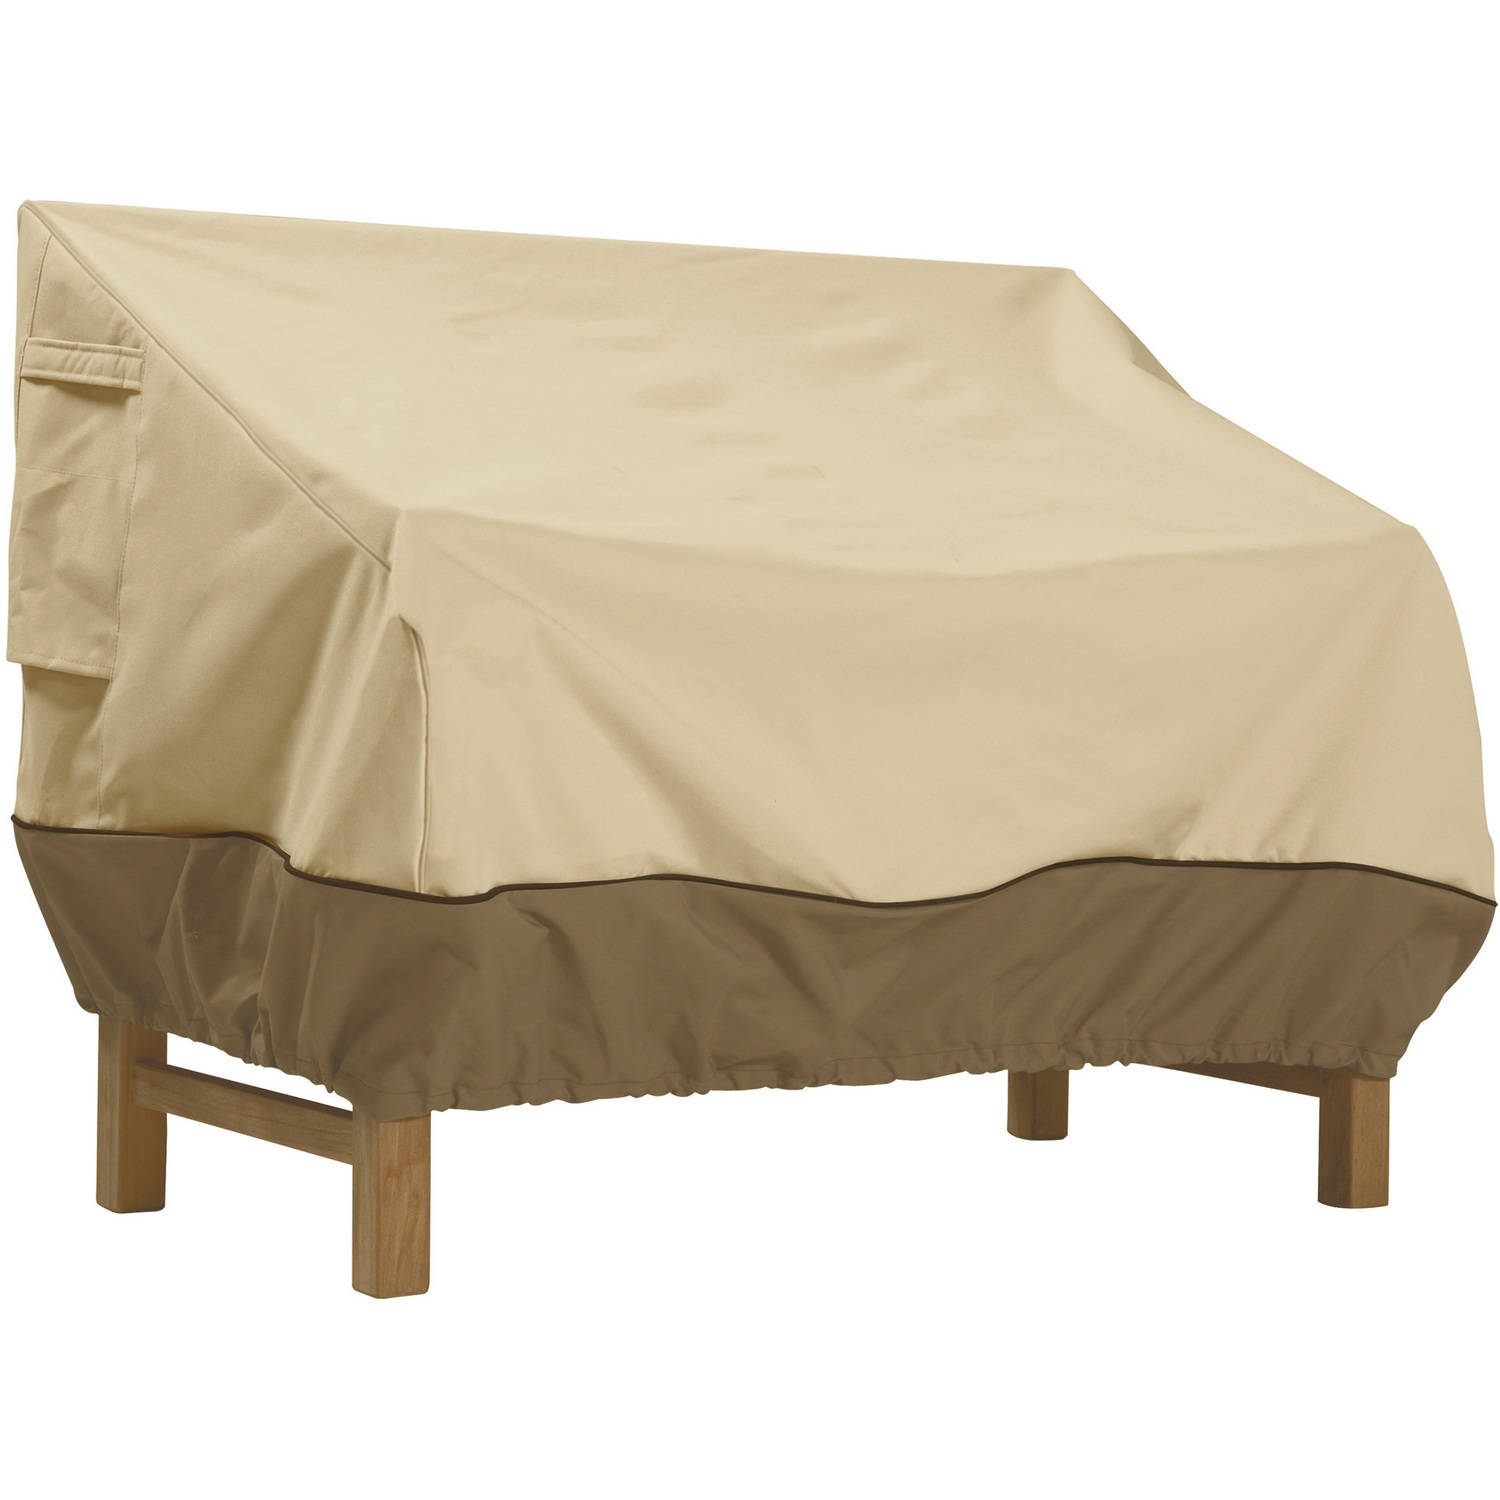 Classic Accessories Veranda Patio Bench and Loveseat Furniture Storage Cover, fits up to... by Classic Accessories